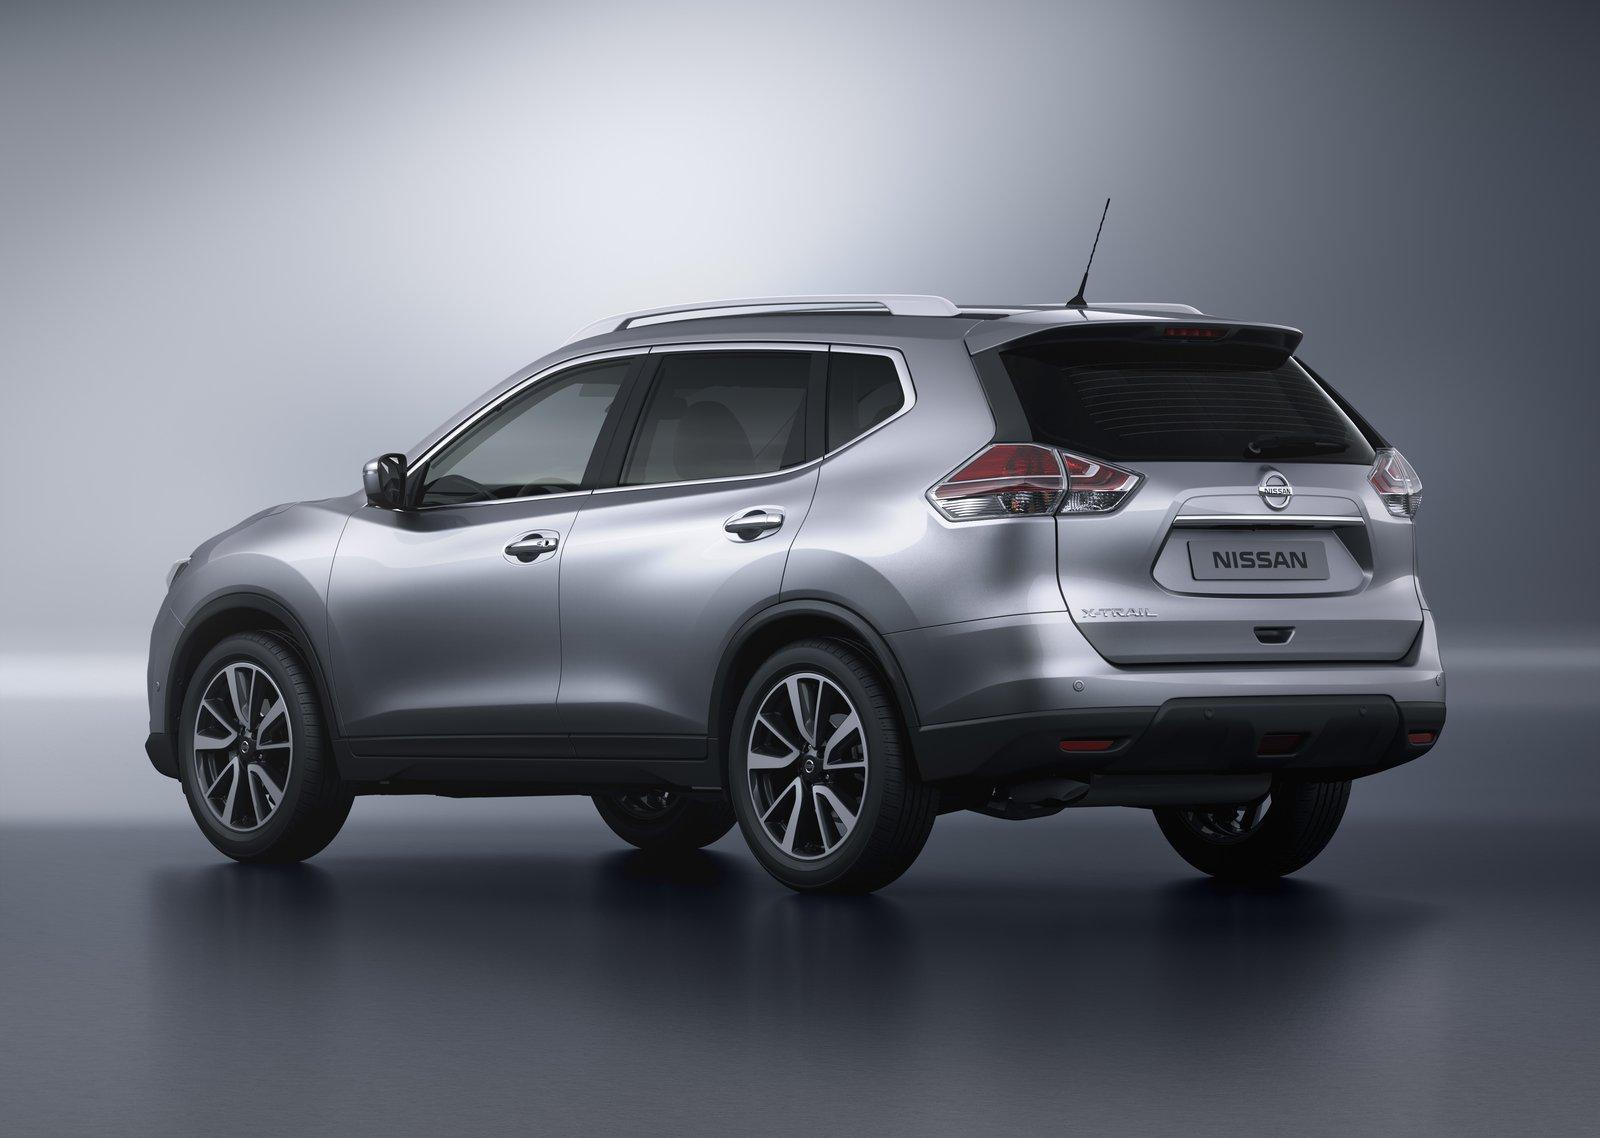 2013 Nissan Murano Nissan Cars - News: 2014 X-Trail unveiled